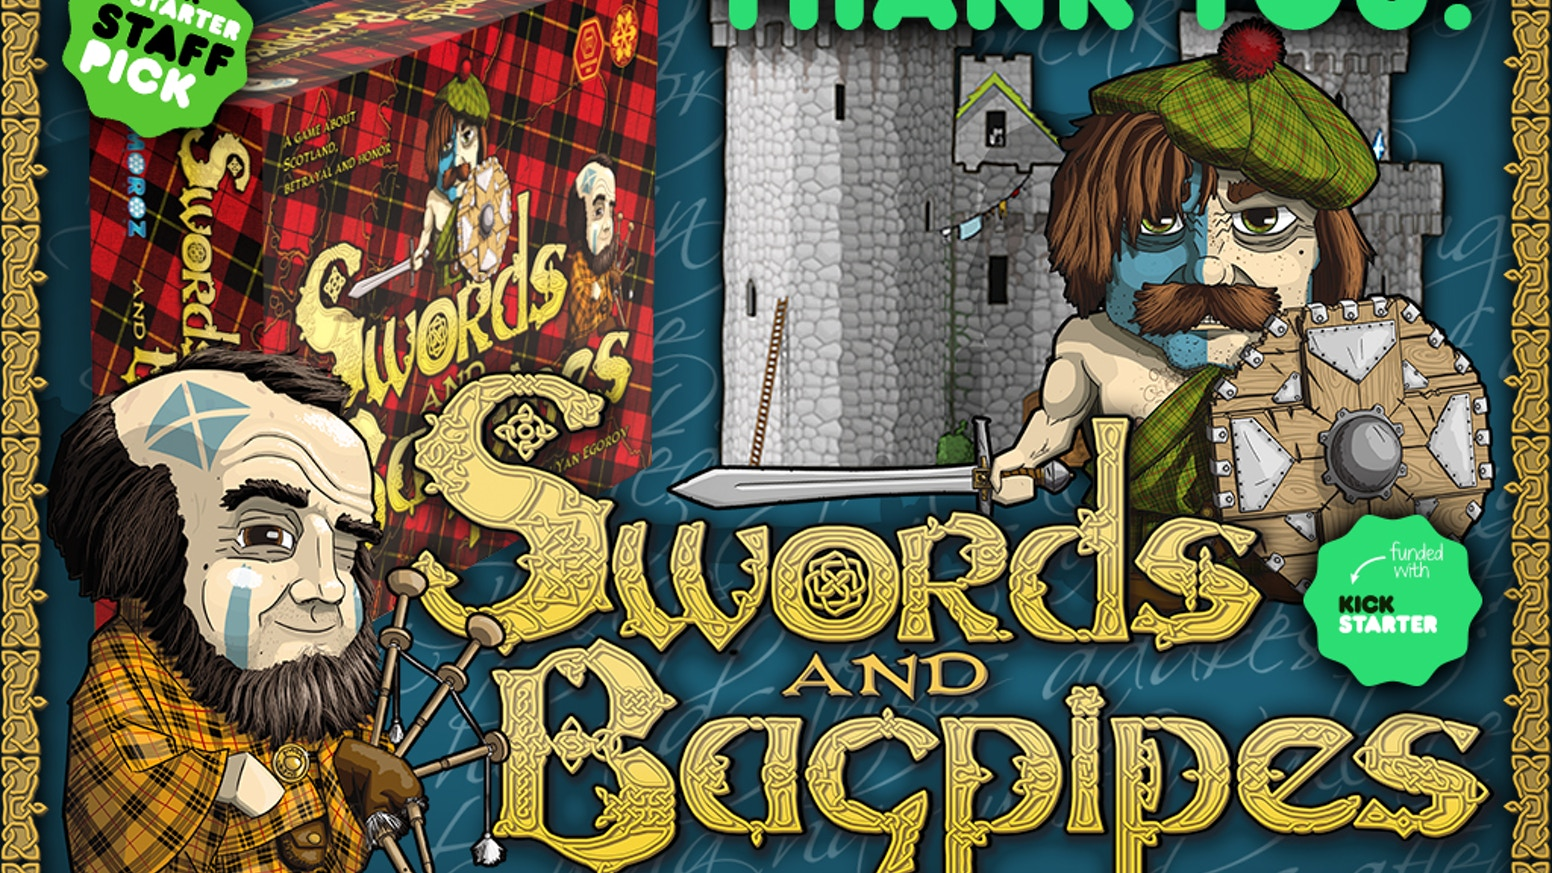 Fight for freedom or betray your friends like never before! A game of hidden intentions, diplomacy and warfare for 2-6 players.